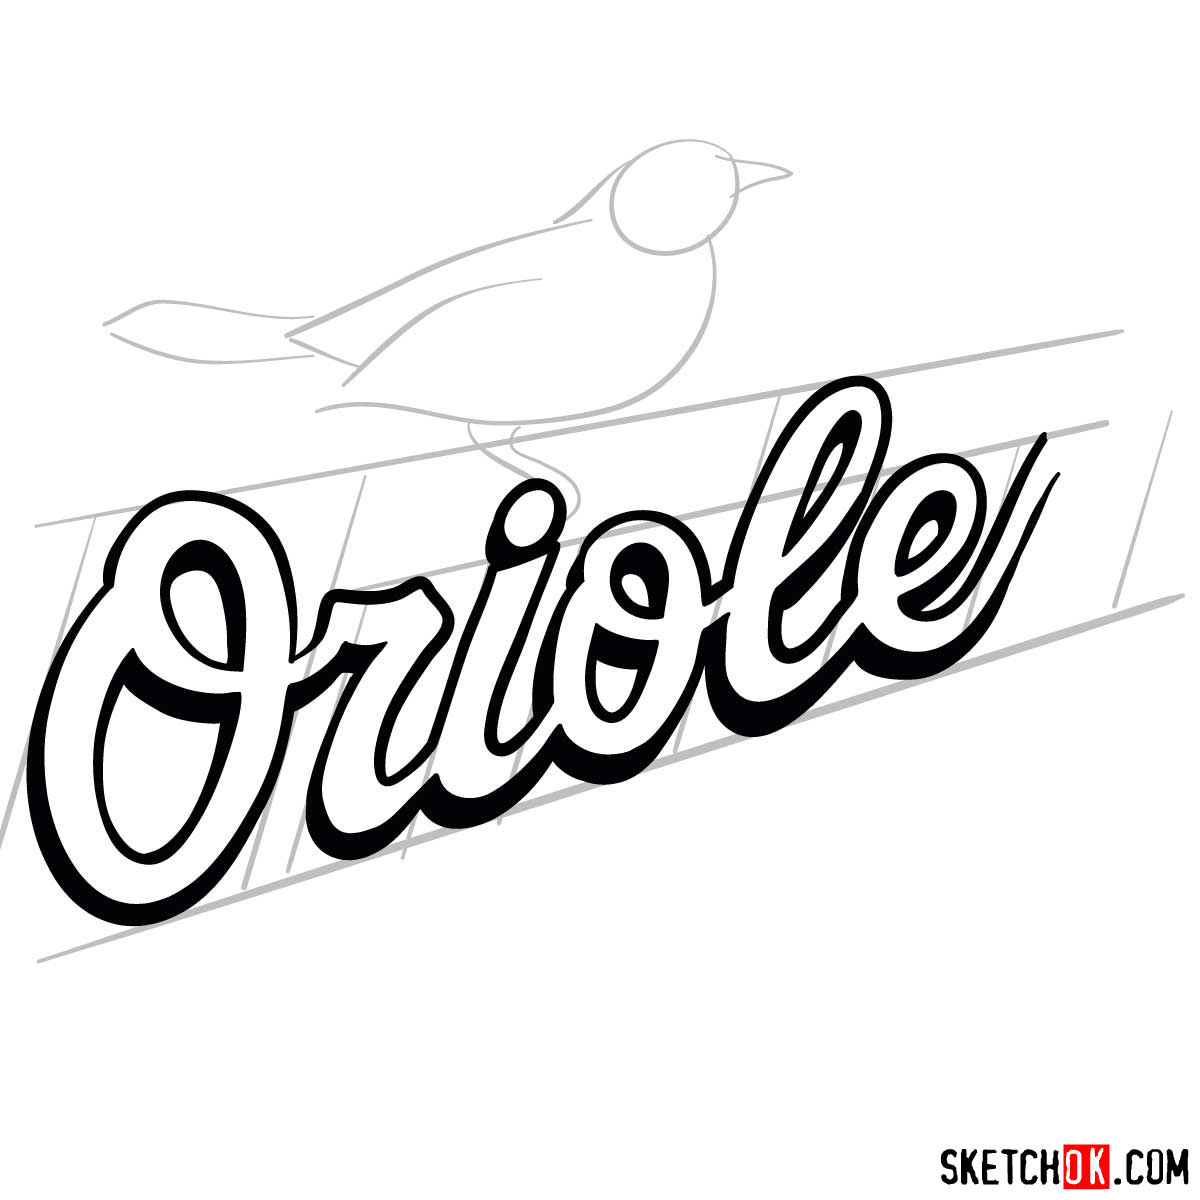 How to draw Baltimore Orioles logo | MLB logos - step 05